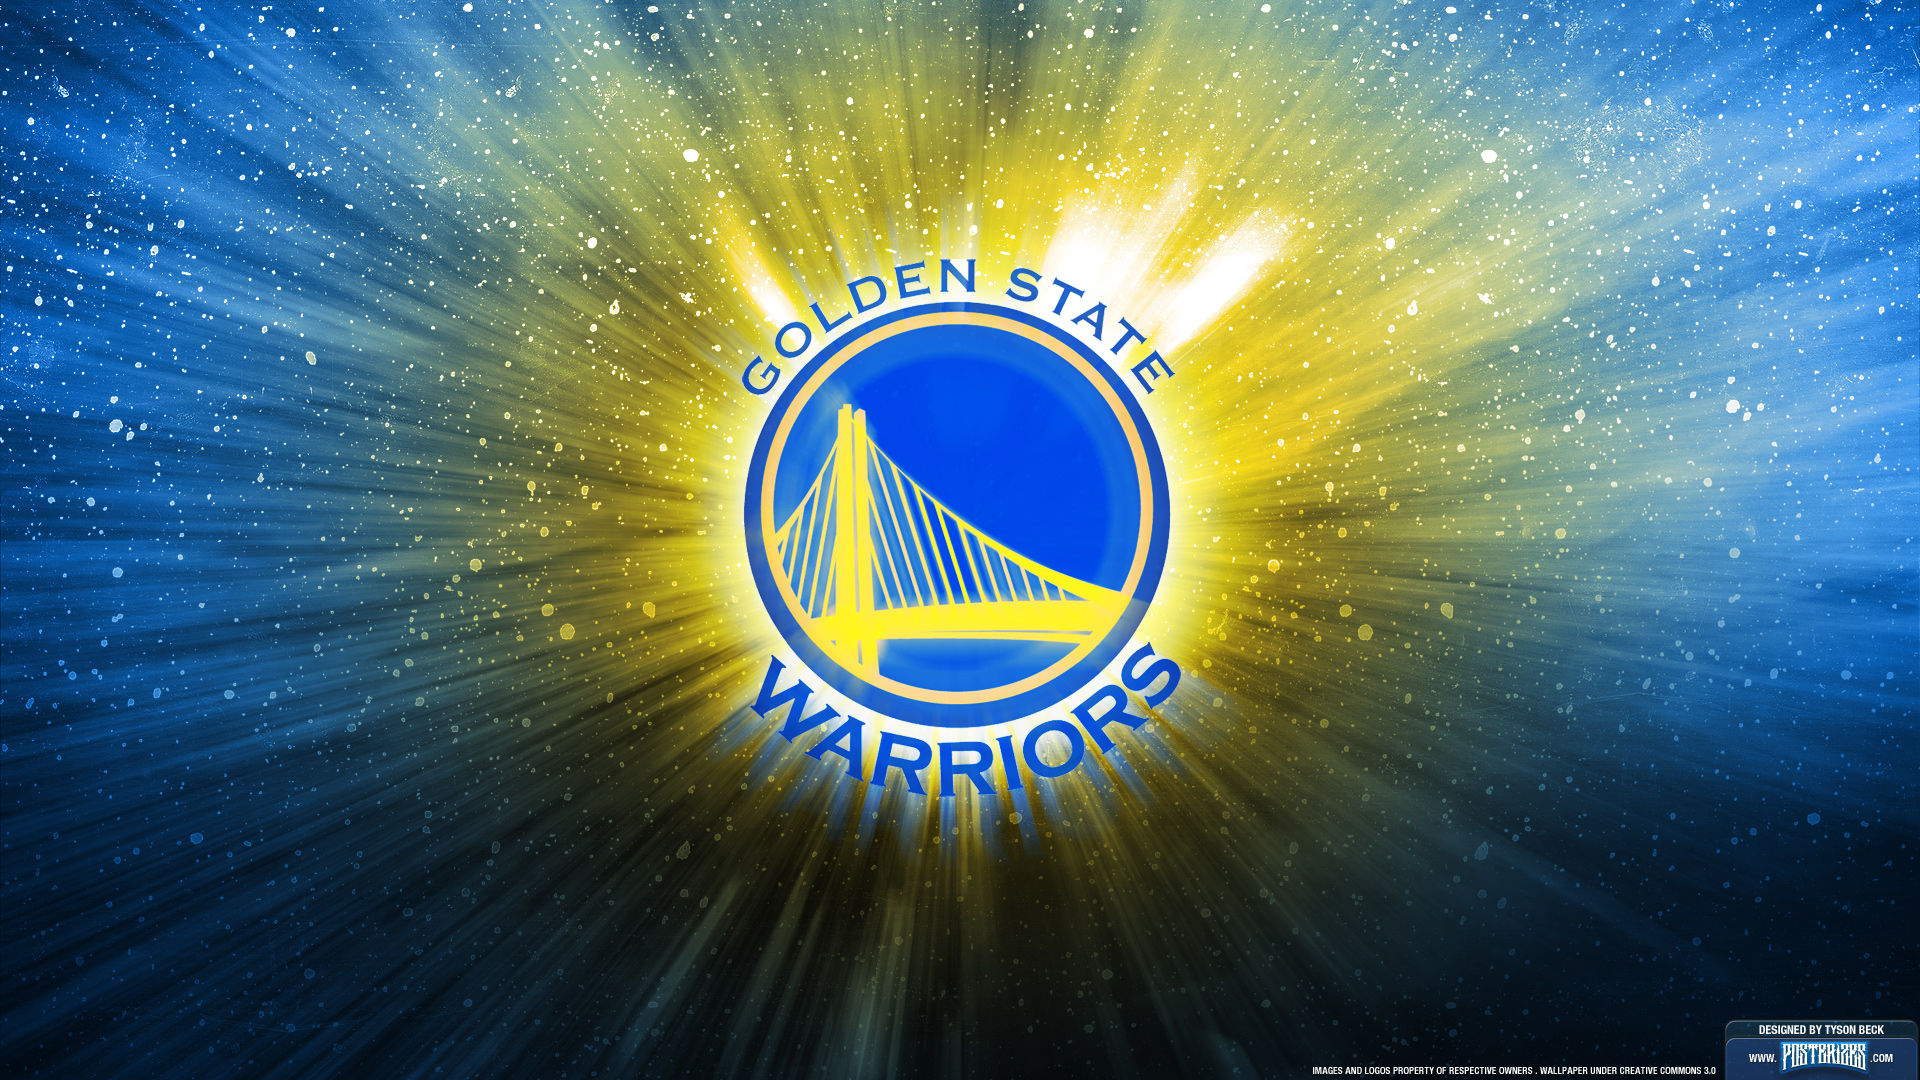 NBA Golden State Warriors team logo widescreen HD wallpaper Wallpaper 1920x1080